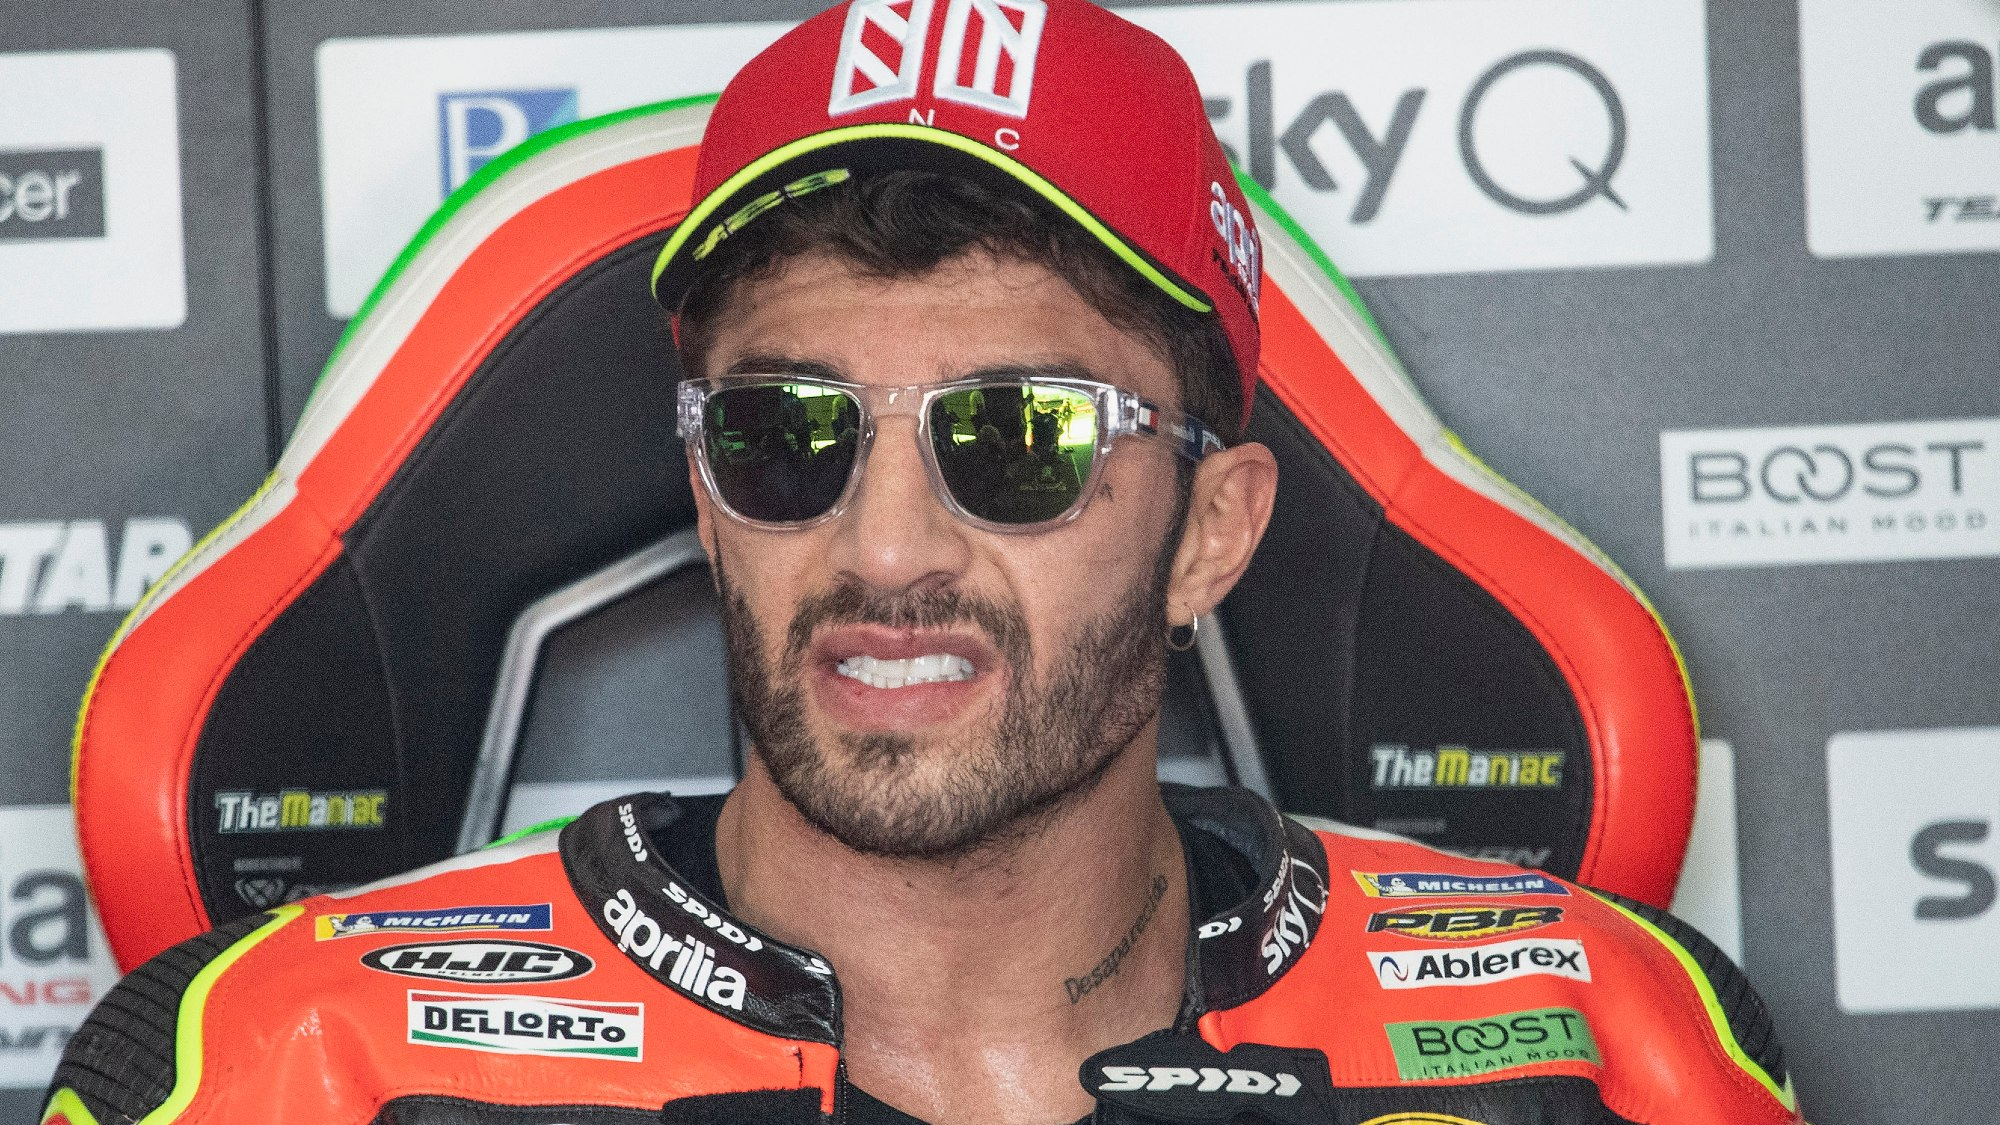 Andrea Iannone MotoGP ban increased to four years after CAS ruling